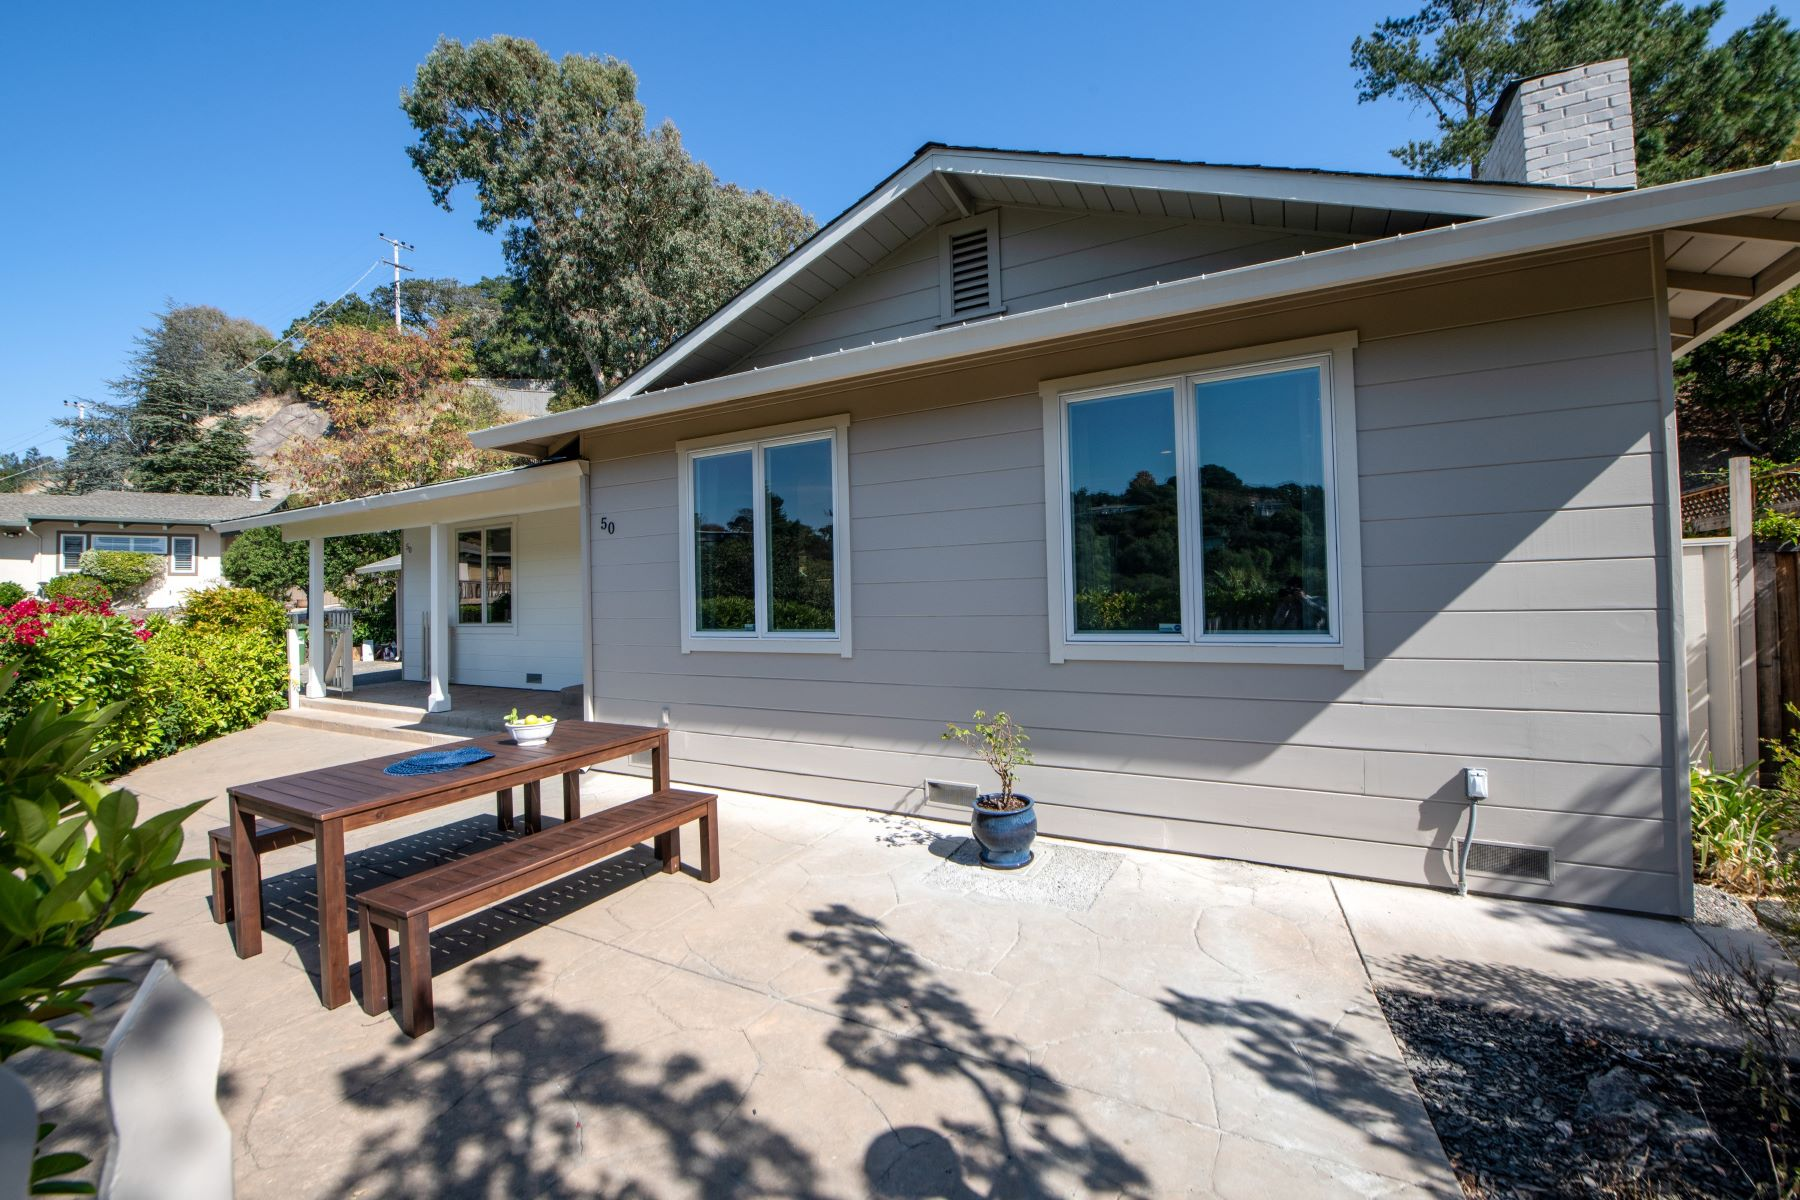 Single Family Homes for Sale at Beautifully Updated Home with Stunning Views of Mt. Tam 50 Via Cheparro Greenbrae, California 94904 United States